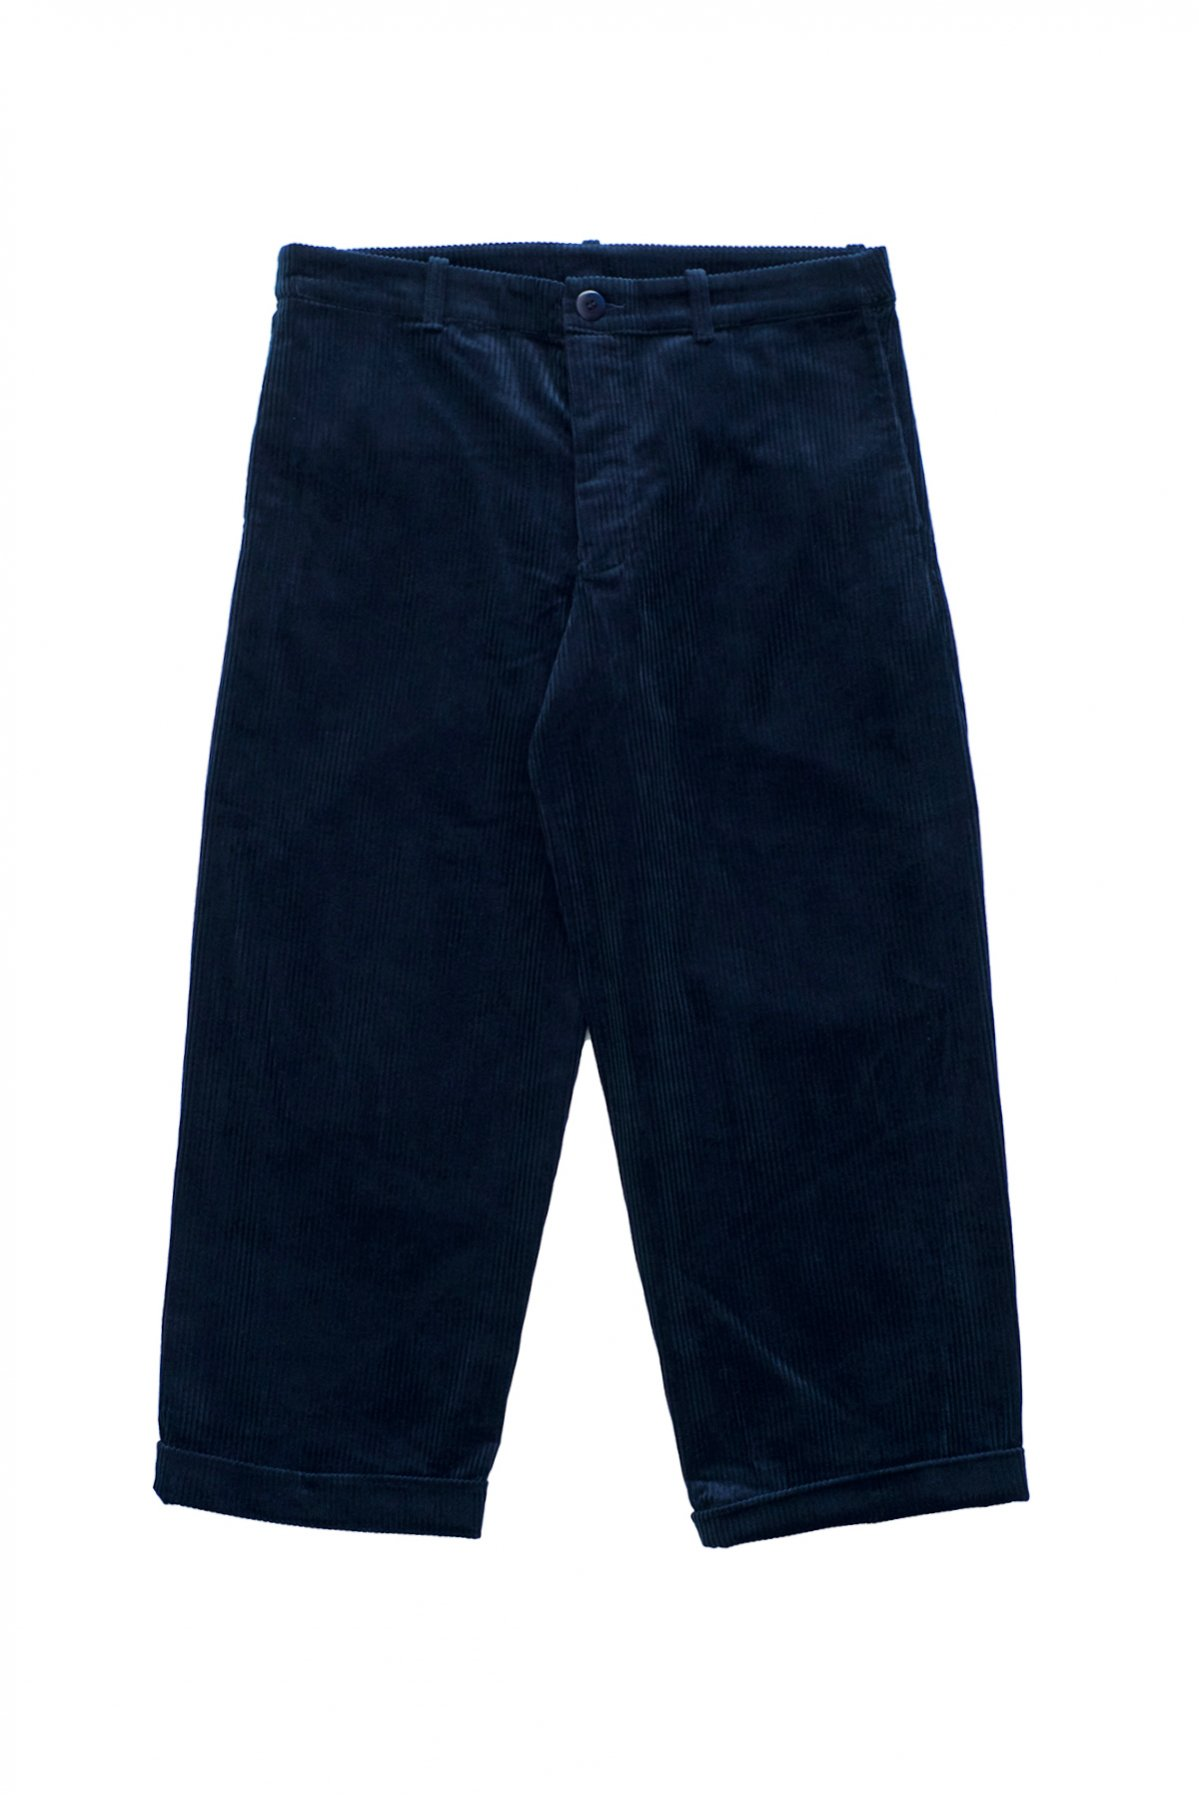 toogood - THE BRICKLAYER TROUSER - JUMBO CORD - INK PRICE  71,500 tax-in